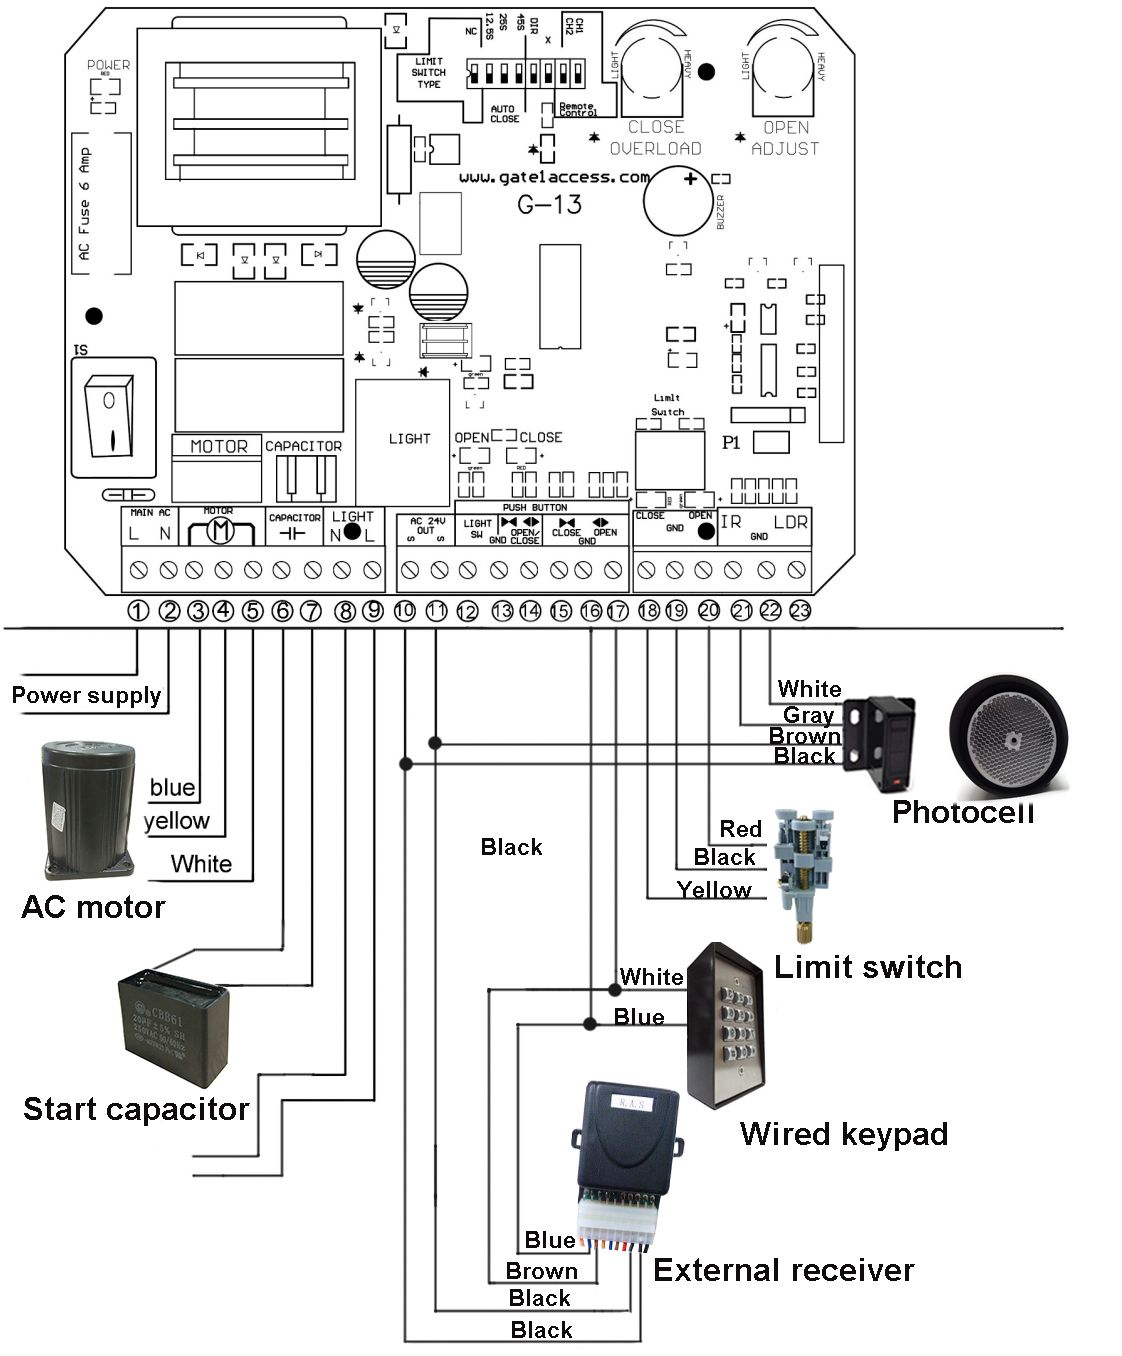 Access Control Cable Diagram